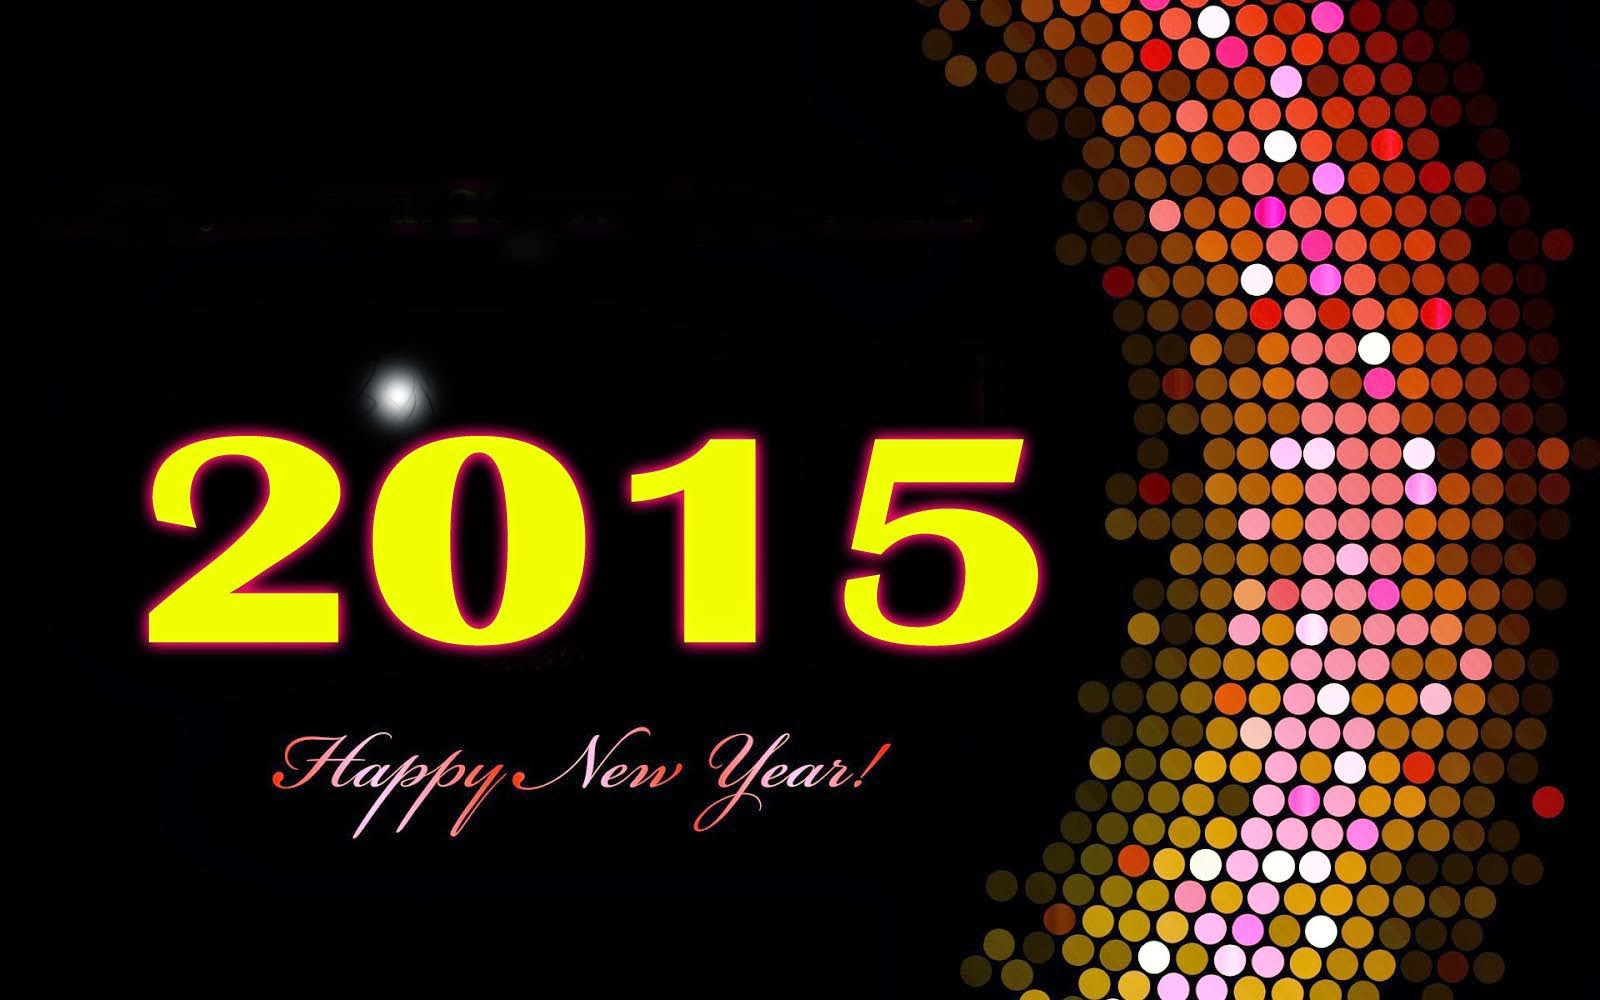 Happy New Year 2015 - Facebook Photos Wallpapers